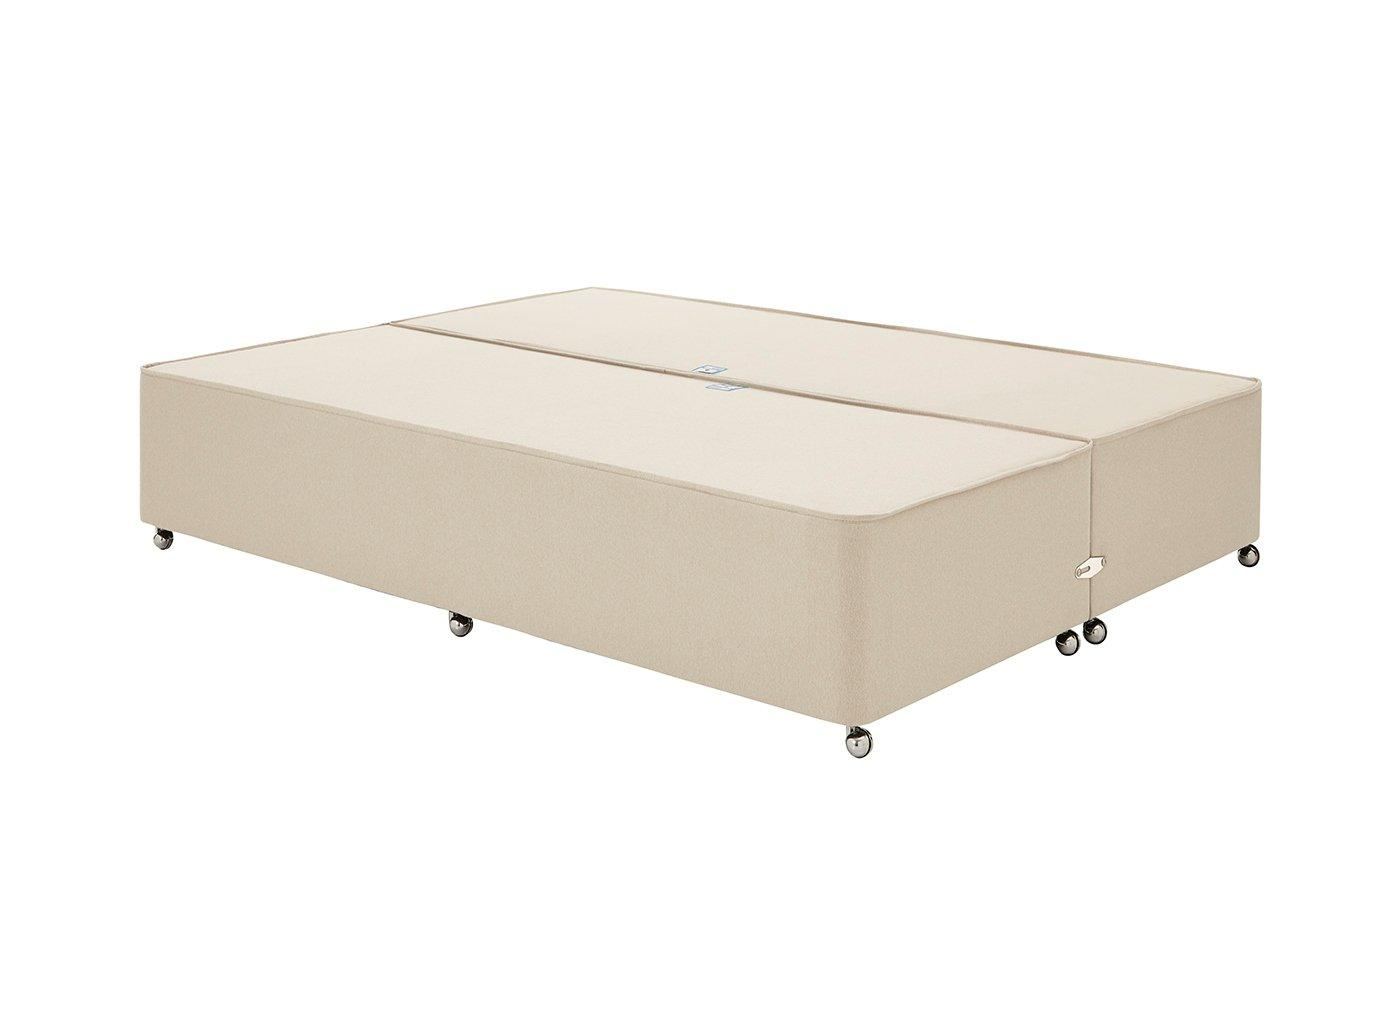 Luxury Divan Base 4'0 Small double GREY